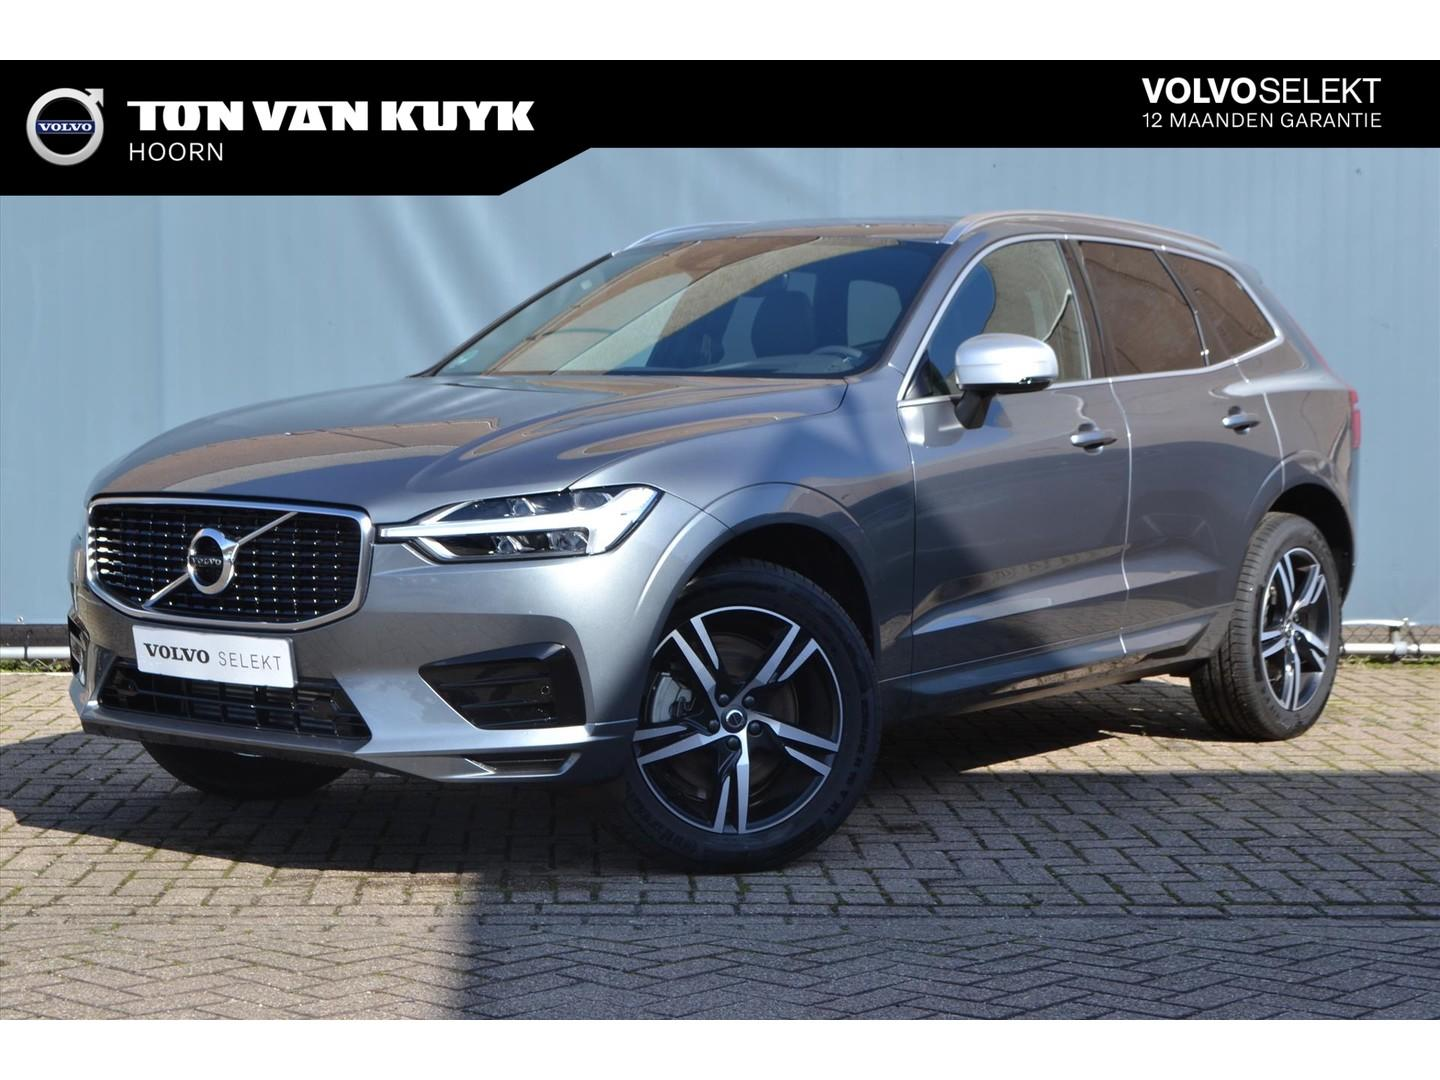 Volvo Xc60 T4 geartronic r-design